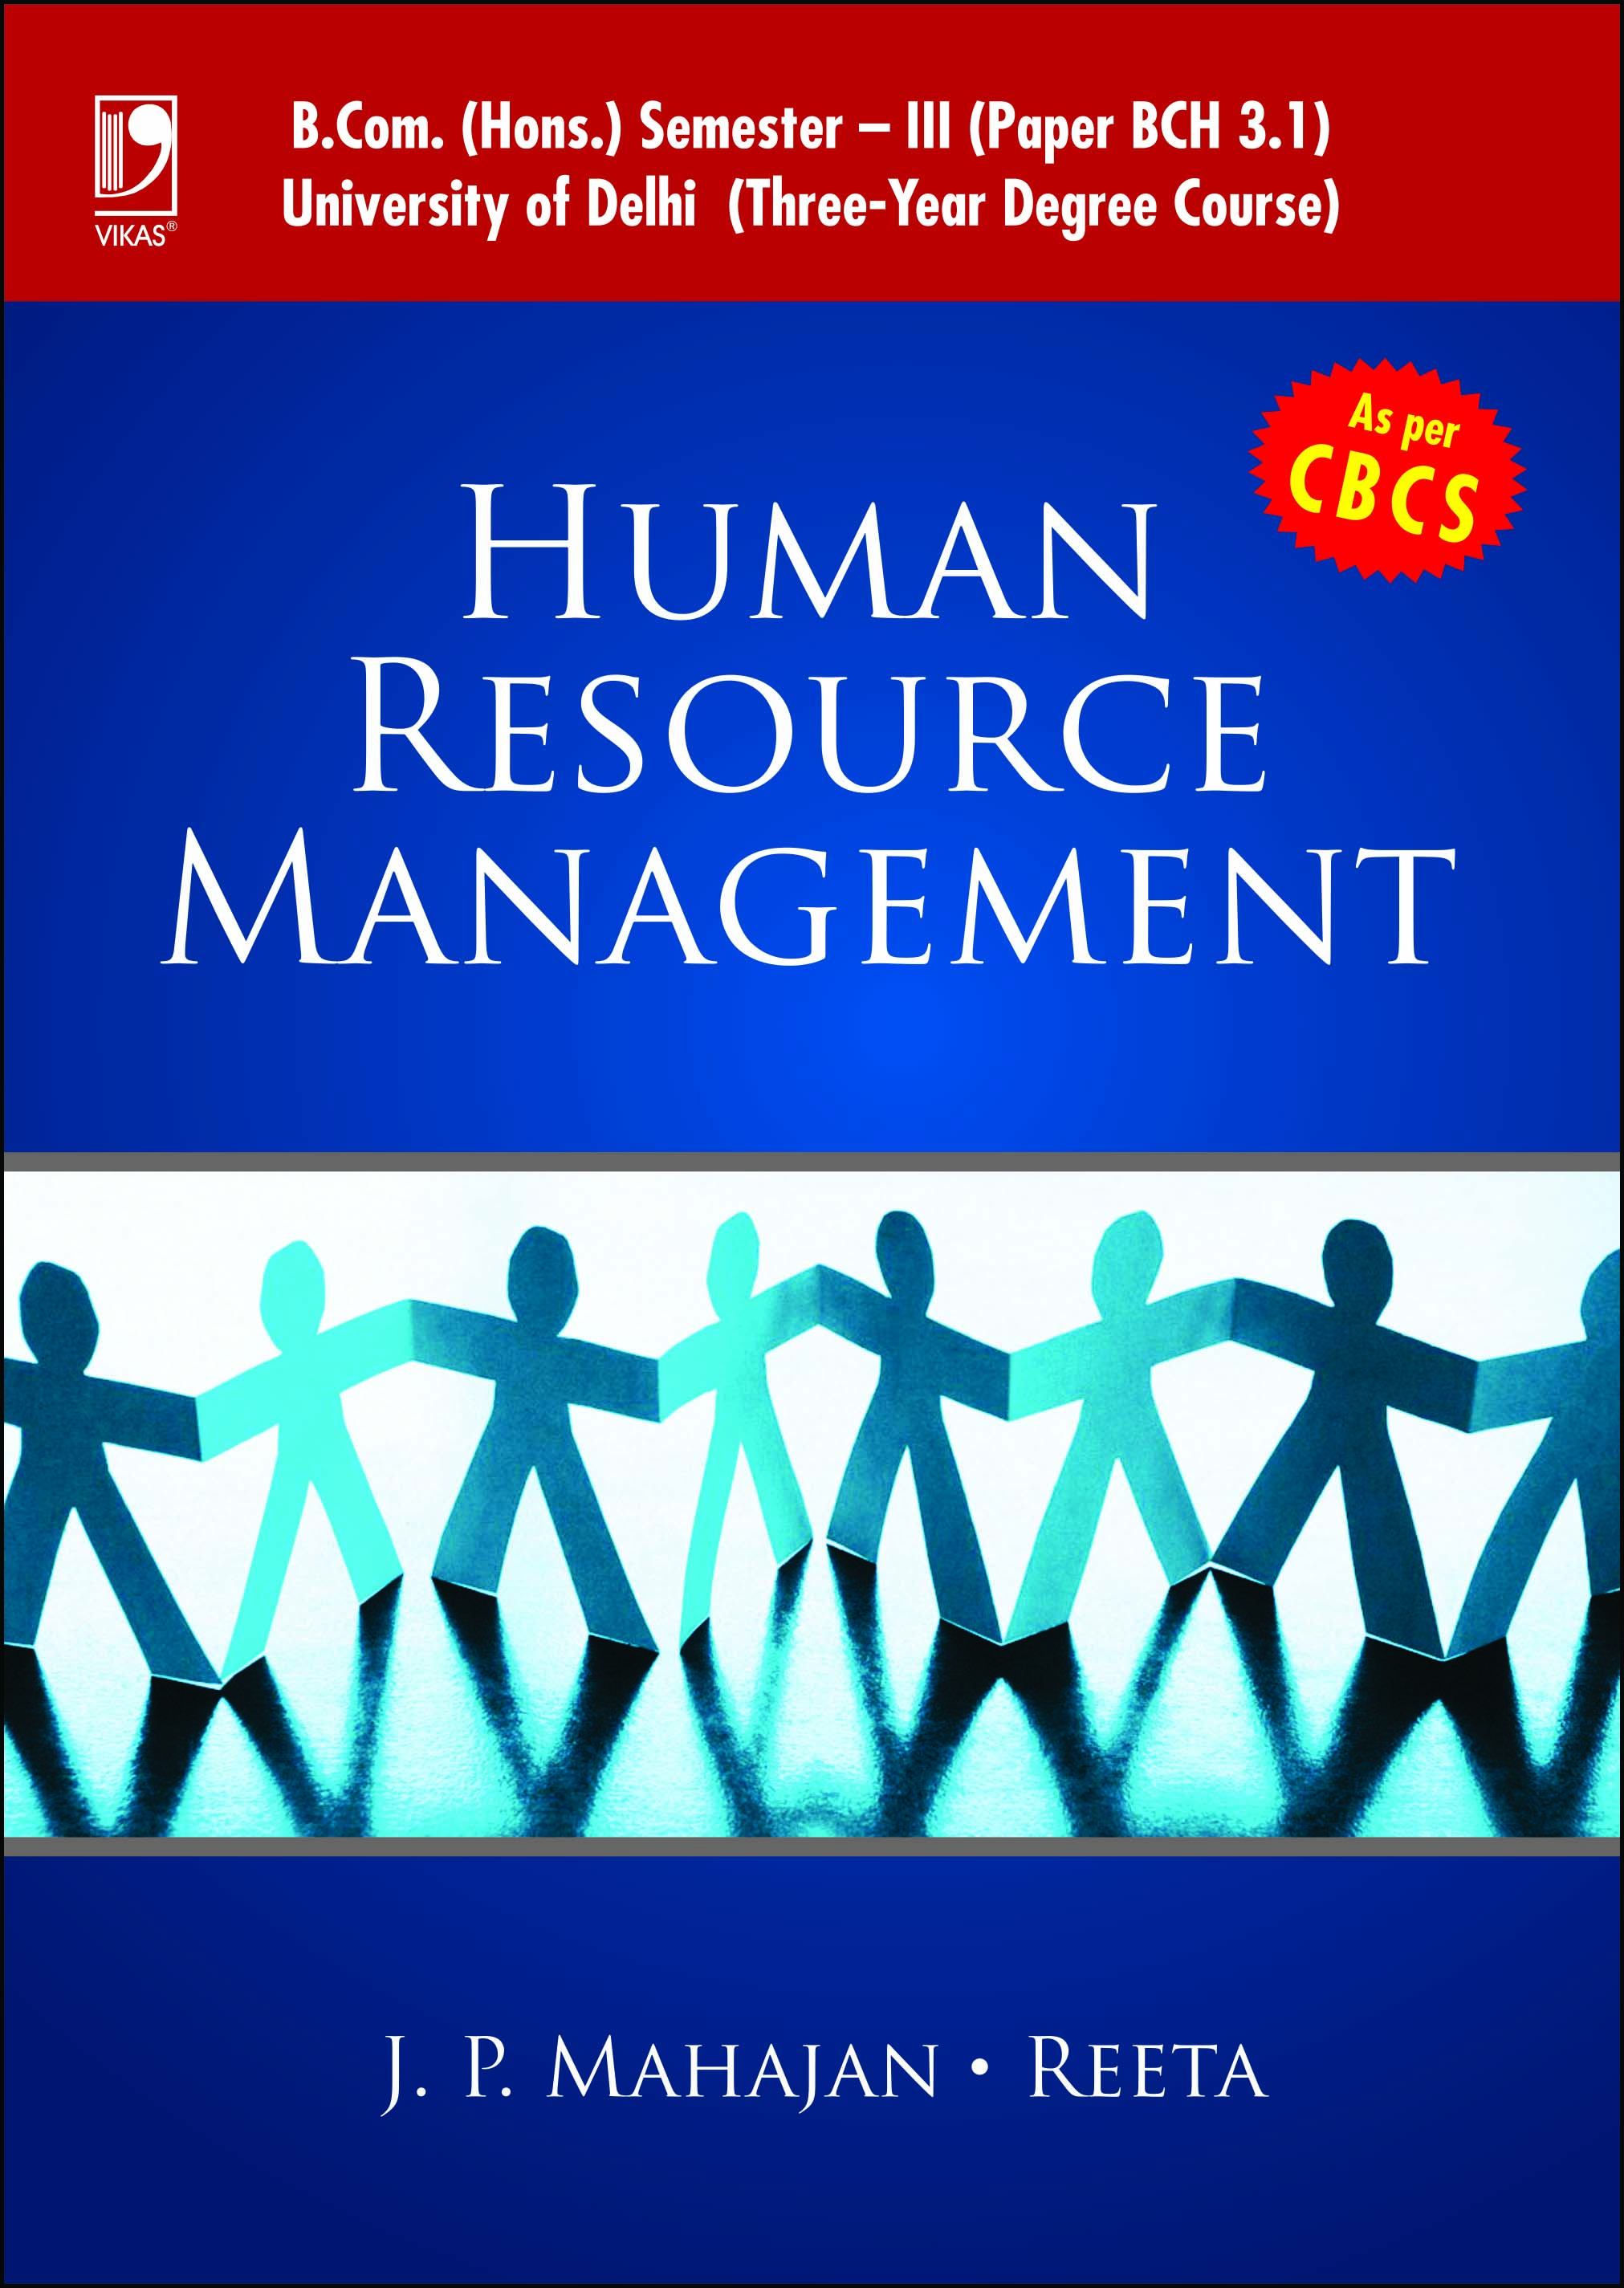 "HUMAN RESOURCE MANAGEMENT: <Span Class=""Subtitlevalue"">(FOR B.COM, SEM.-3, DELHI UNIVERSITY, AS PER CBCS) </Span>"